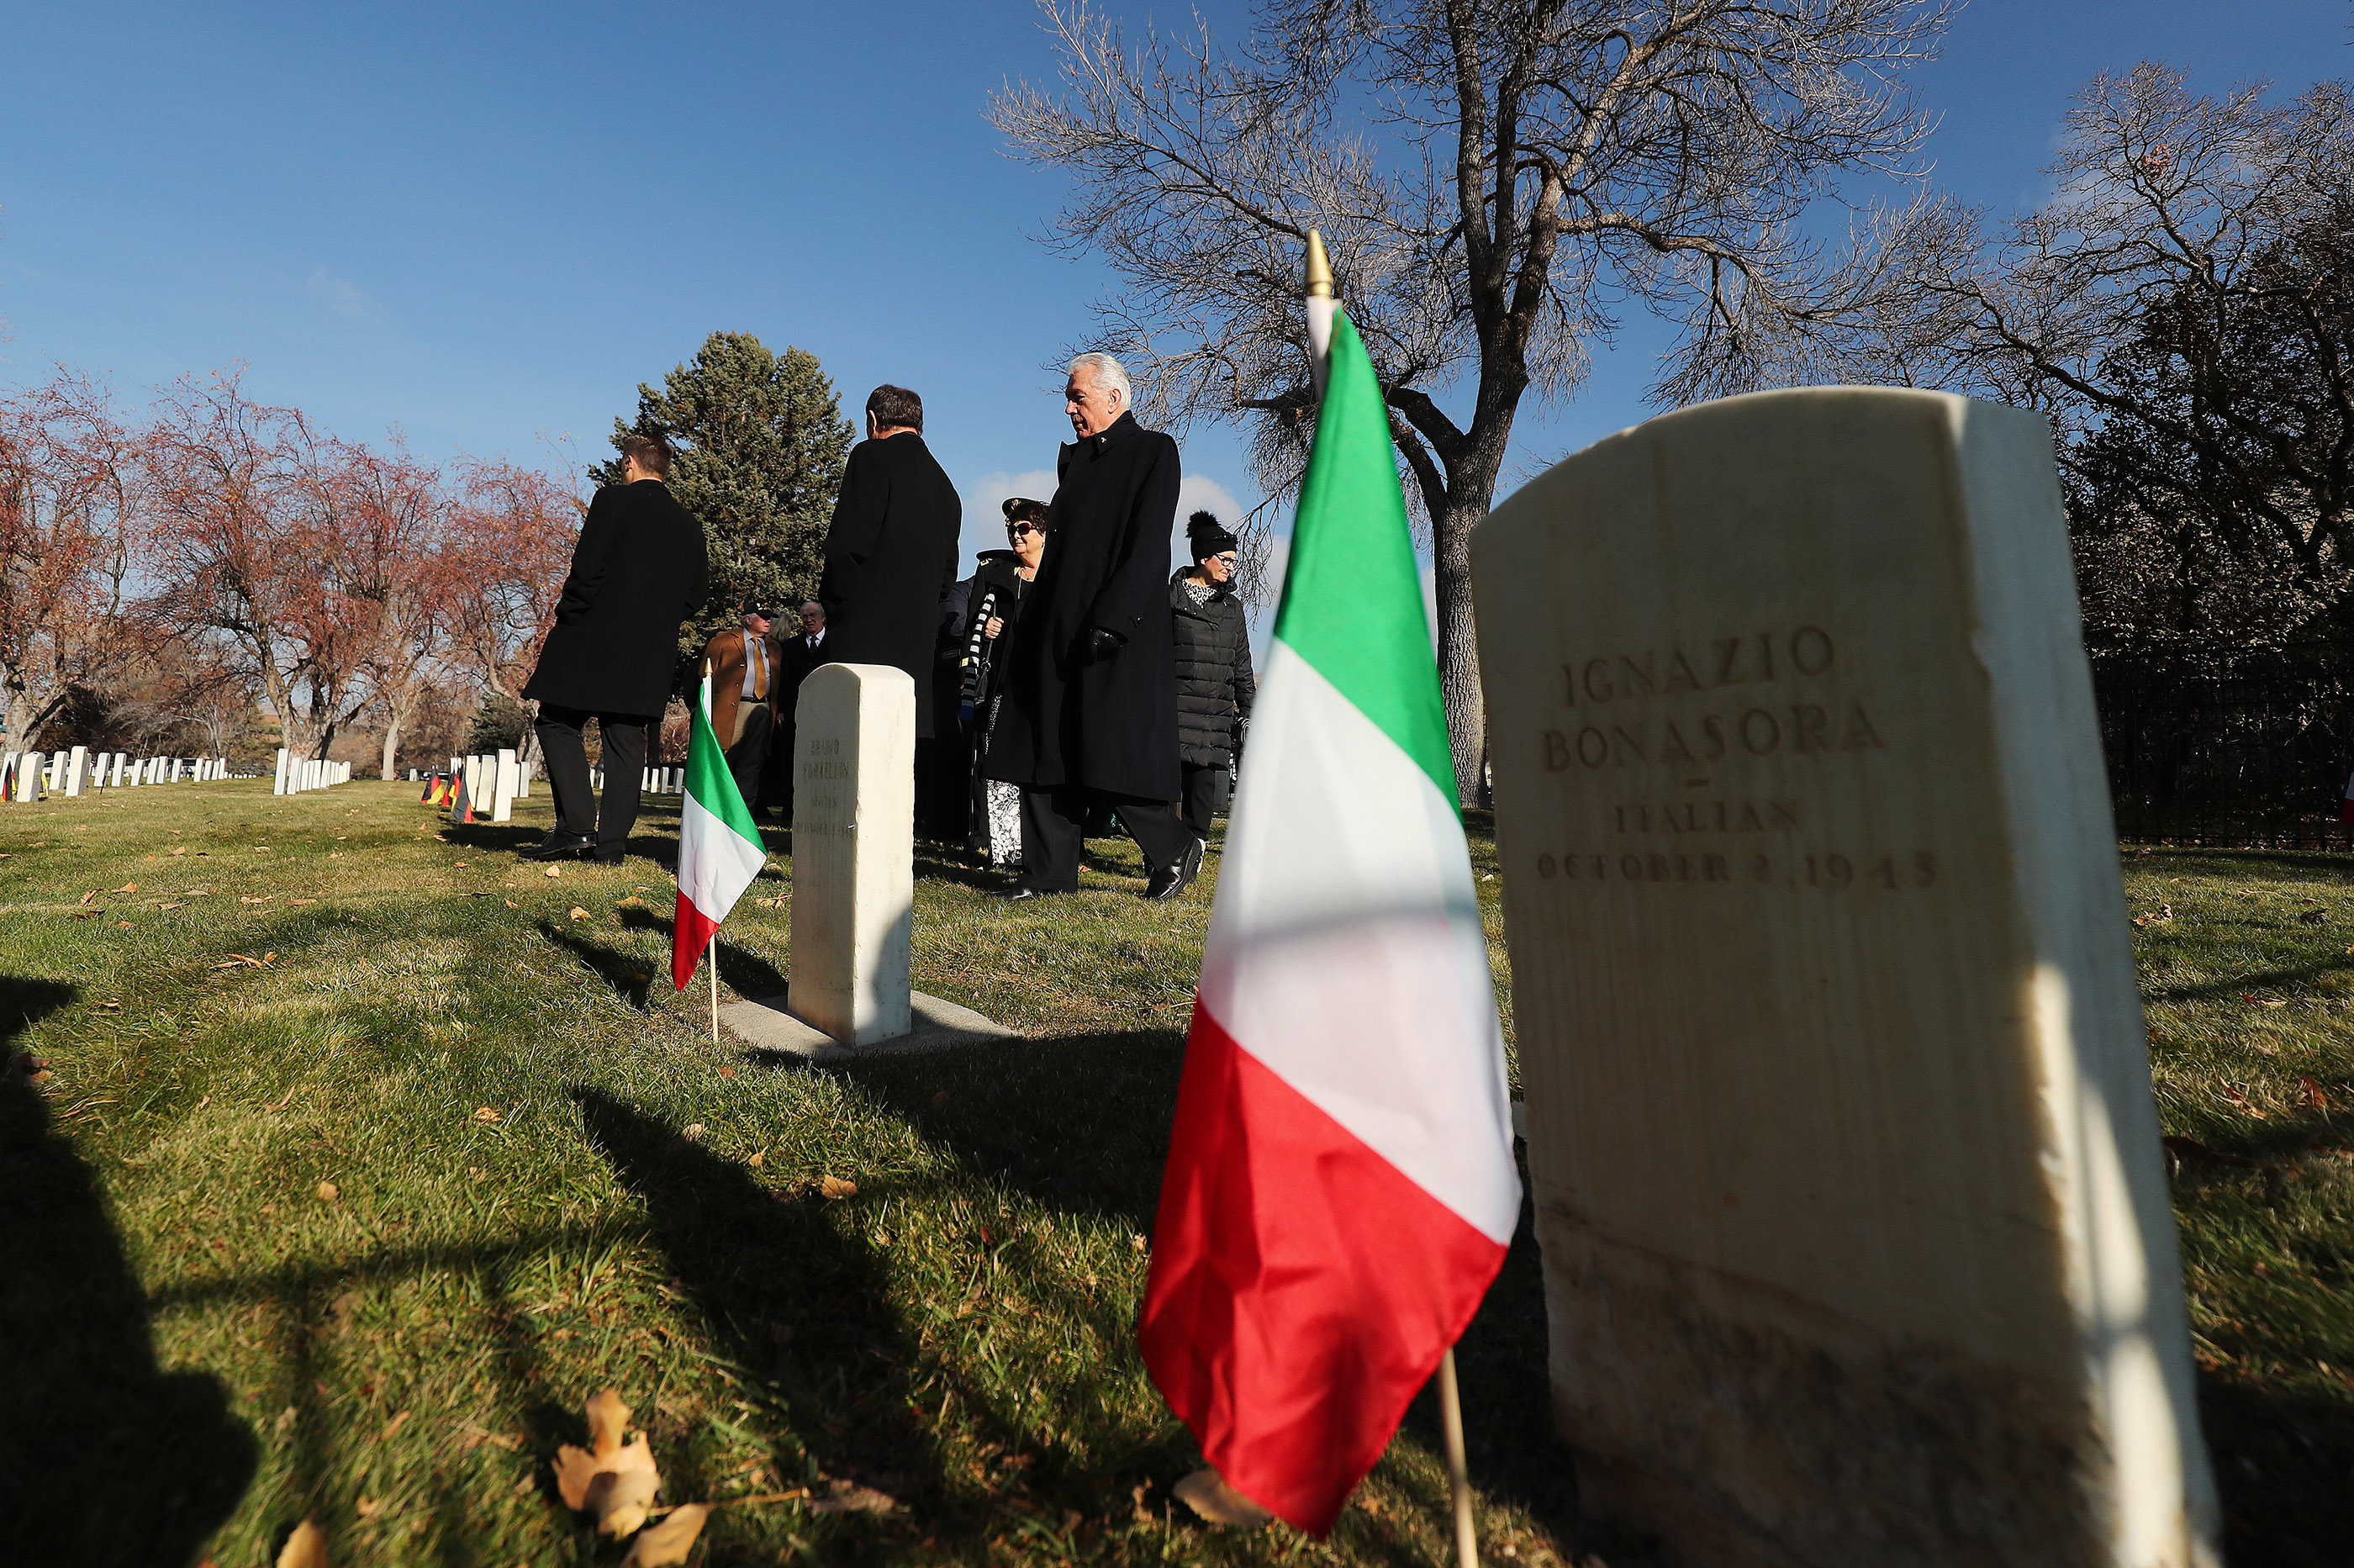 Gov.Gary Herbert and Elder Dieter F. Uchtdorf of The Church of Jesus Christ of Latter-day Saints' Quorum of the Twelve Apostles, walks through graves during the German Day of Remembrance (Volkstrauertag) at Fort Douglas Military Cemetery in Salt Lake City on Sunday, Nov. 18, 2018.